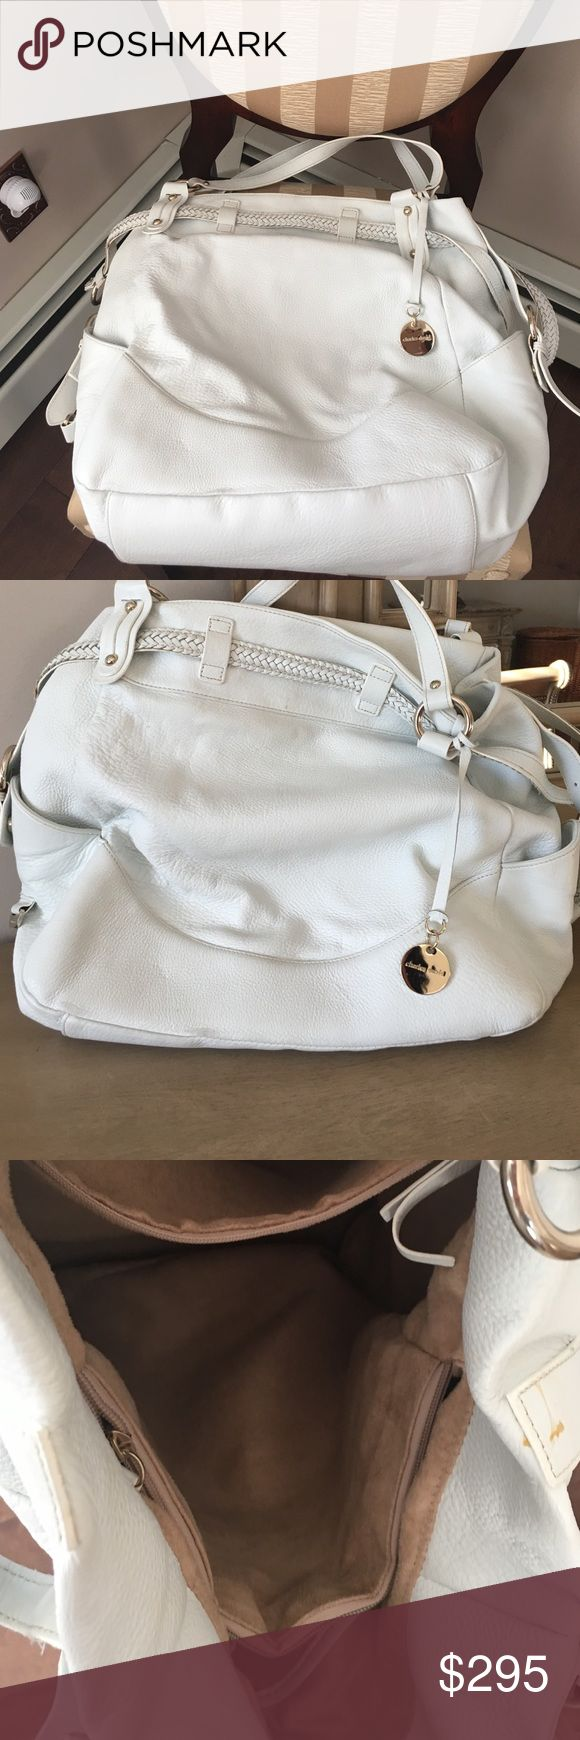 Charles David white leather purse Charles David white leather purse, large like new. Charles David Bags Shoulder Bags